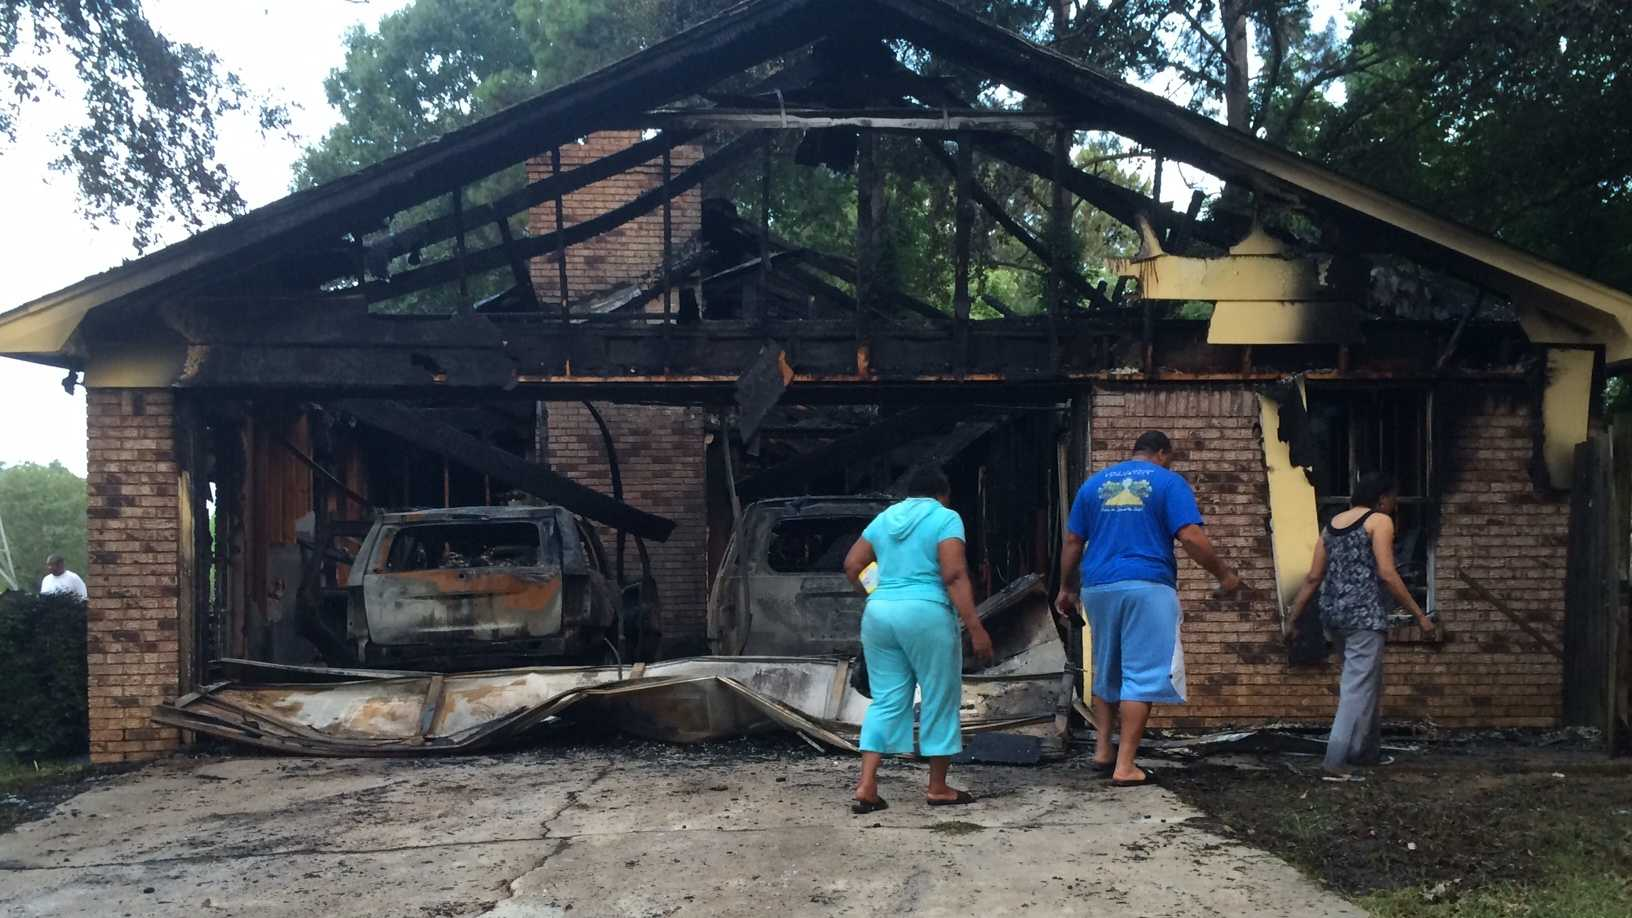 At least five people were inside the home when the fire broke out.